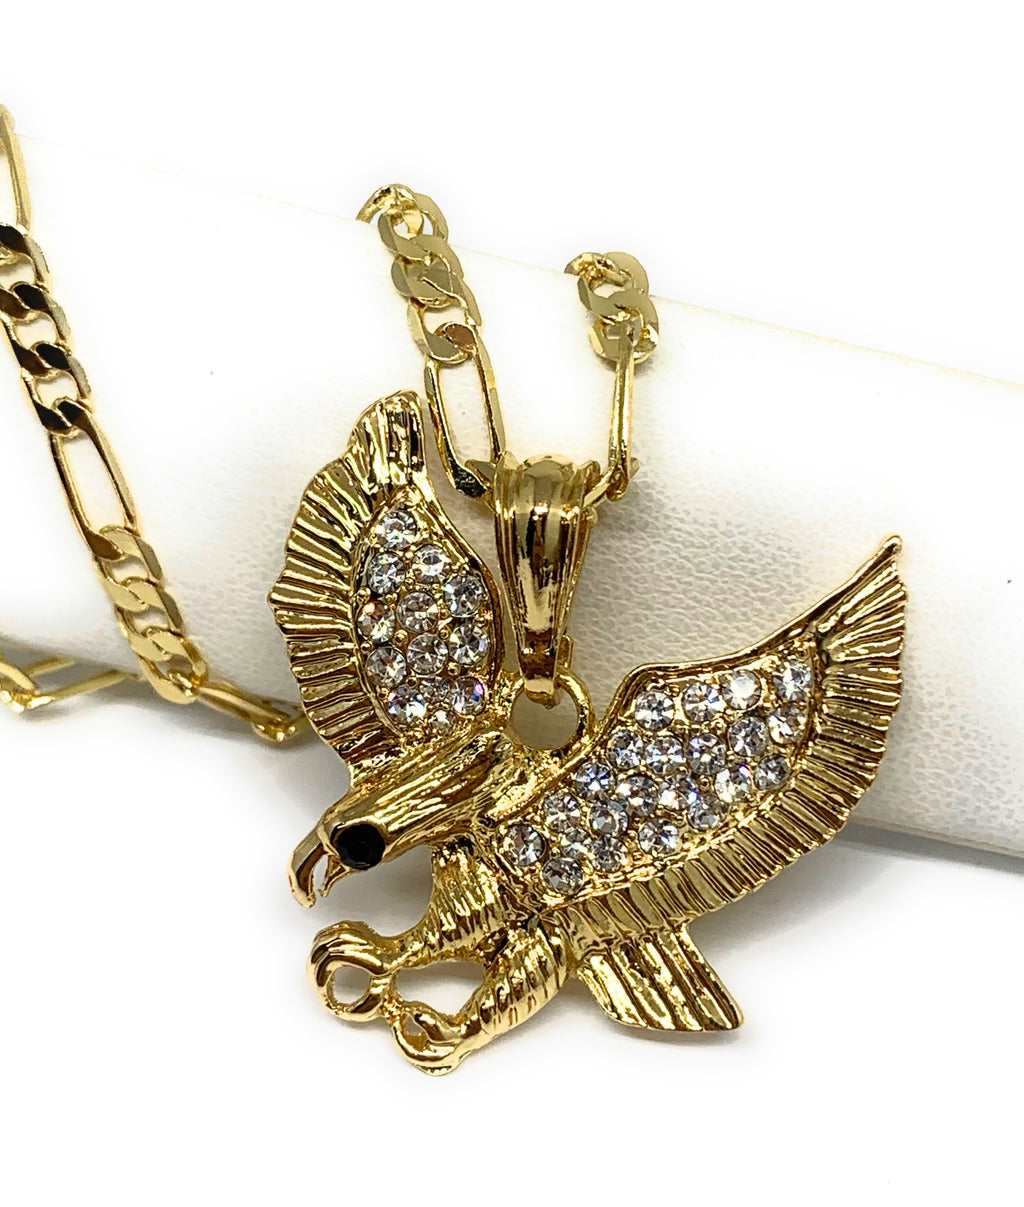 "Gold Plated Iced Out Eagle Pendant Necklace Figaro 26"" Aguila Oro Laminado"